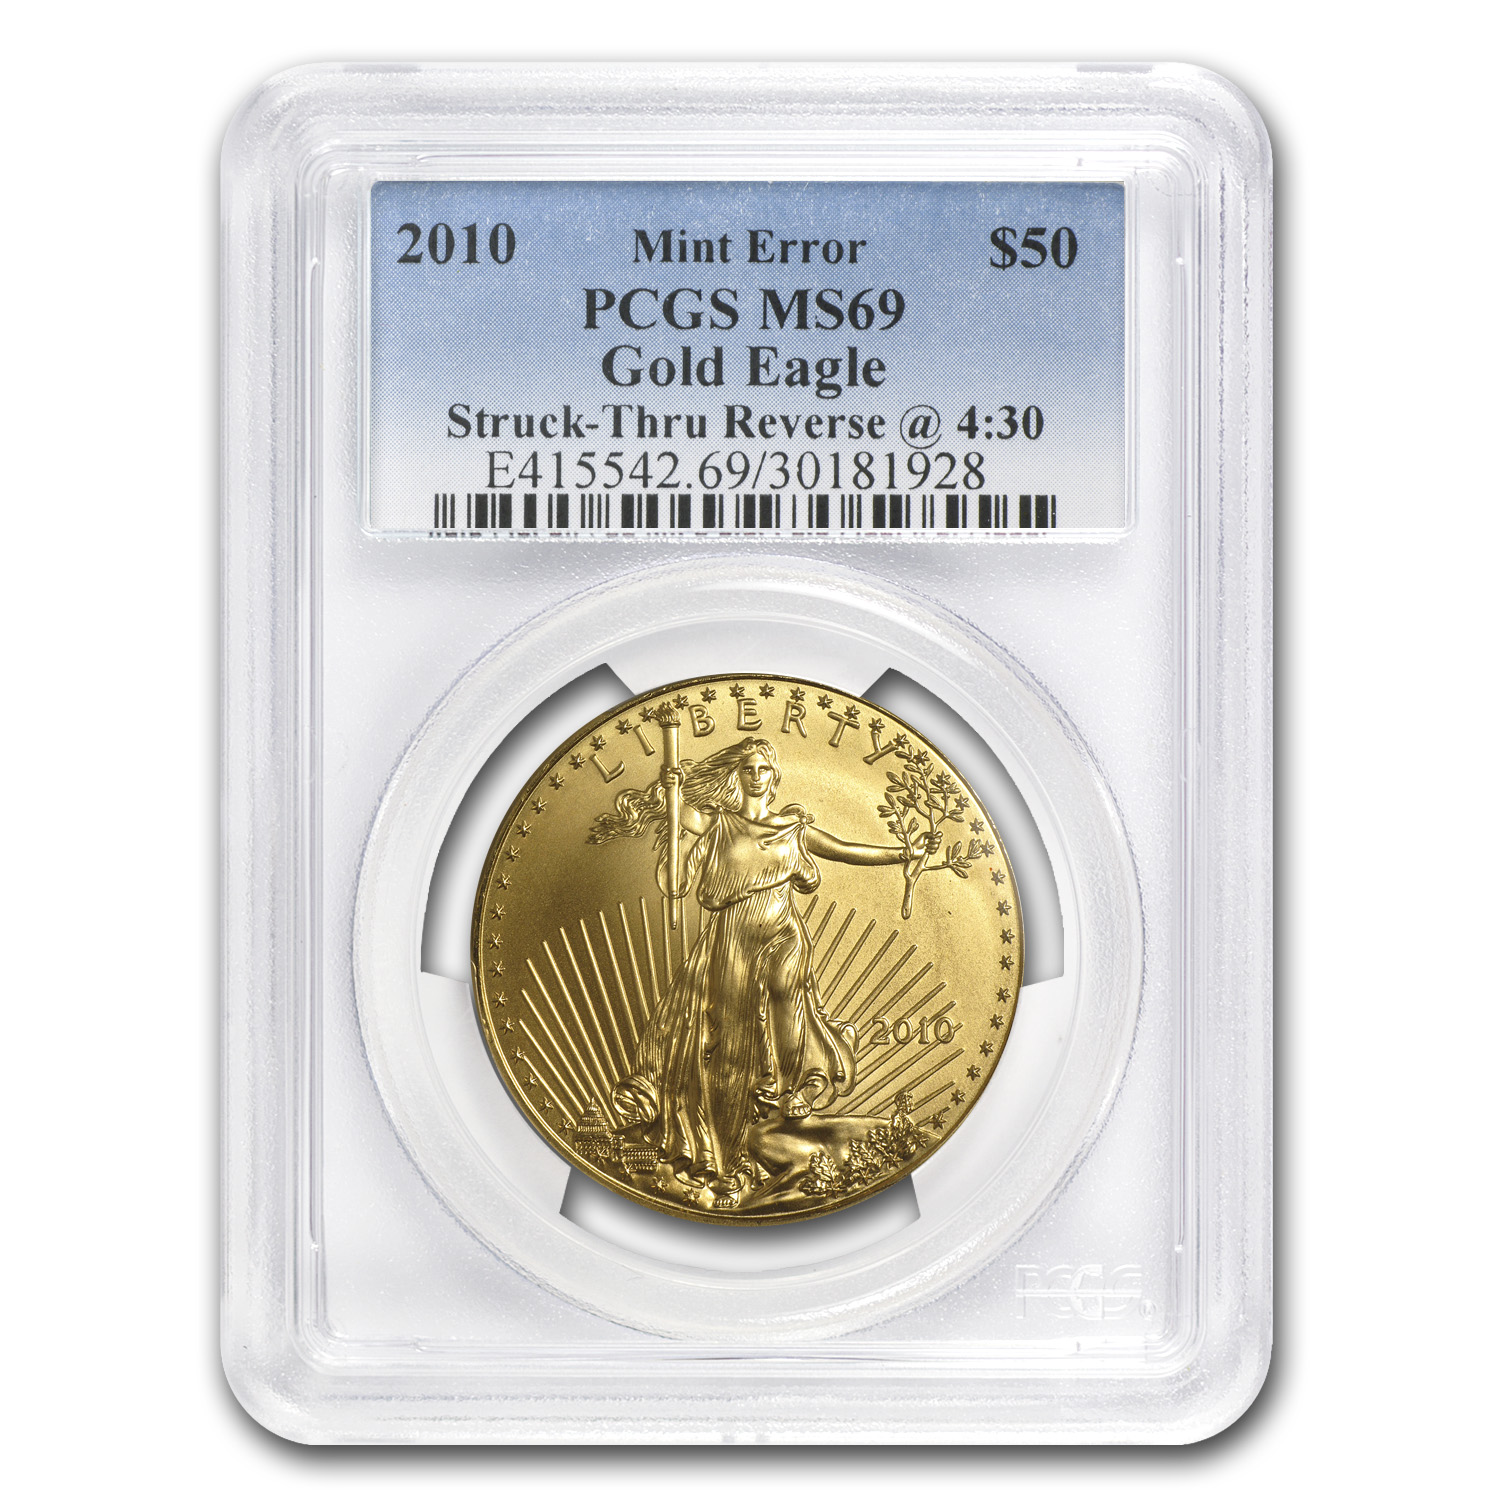 2010 1 oz Gold Eagle Mint Error MS-69 PCGS (Rev Struck Thru)